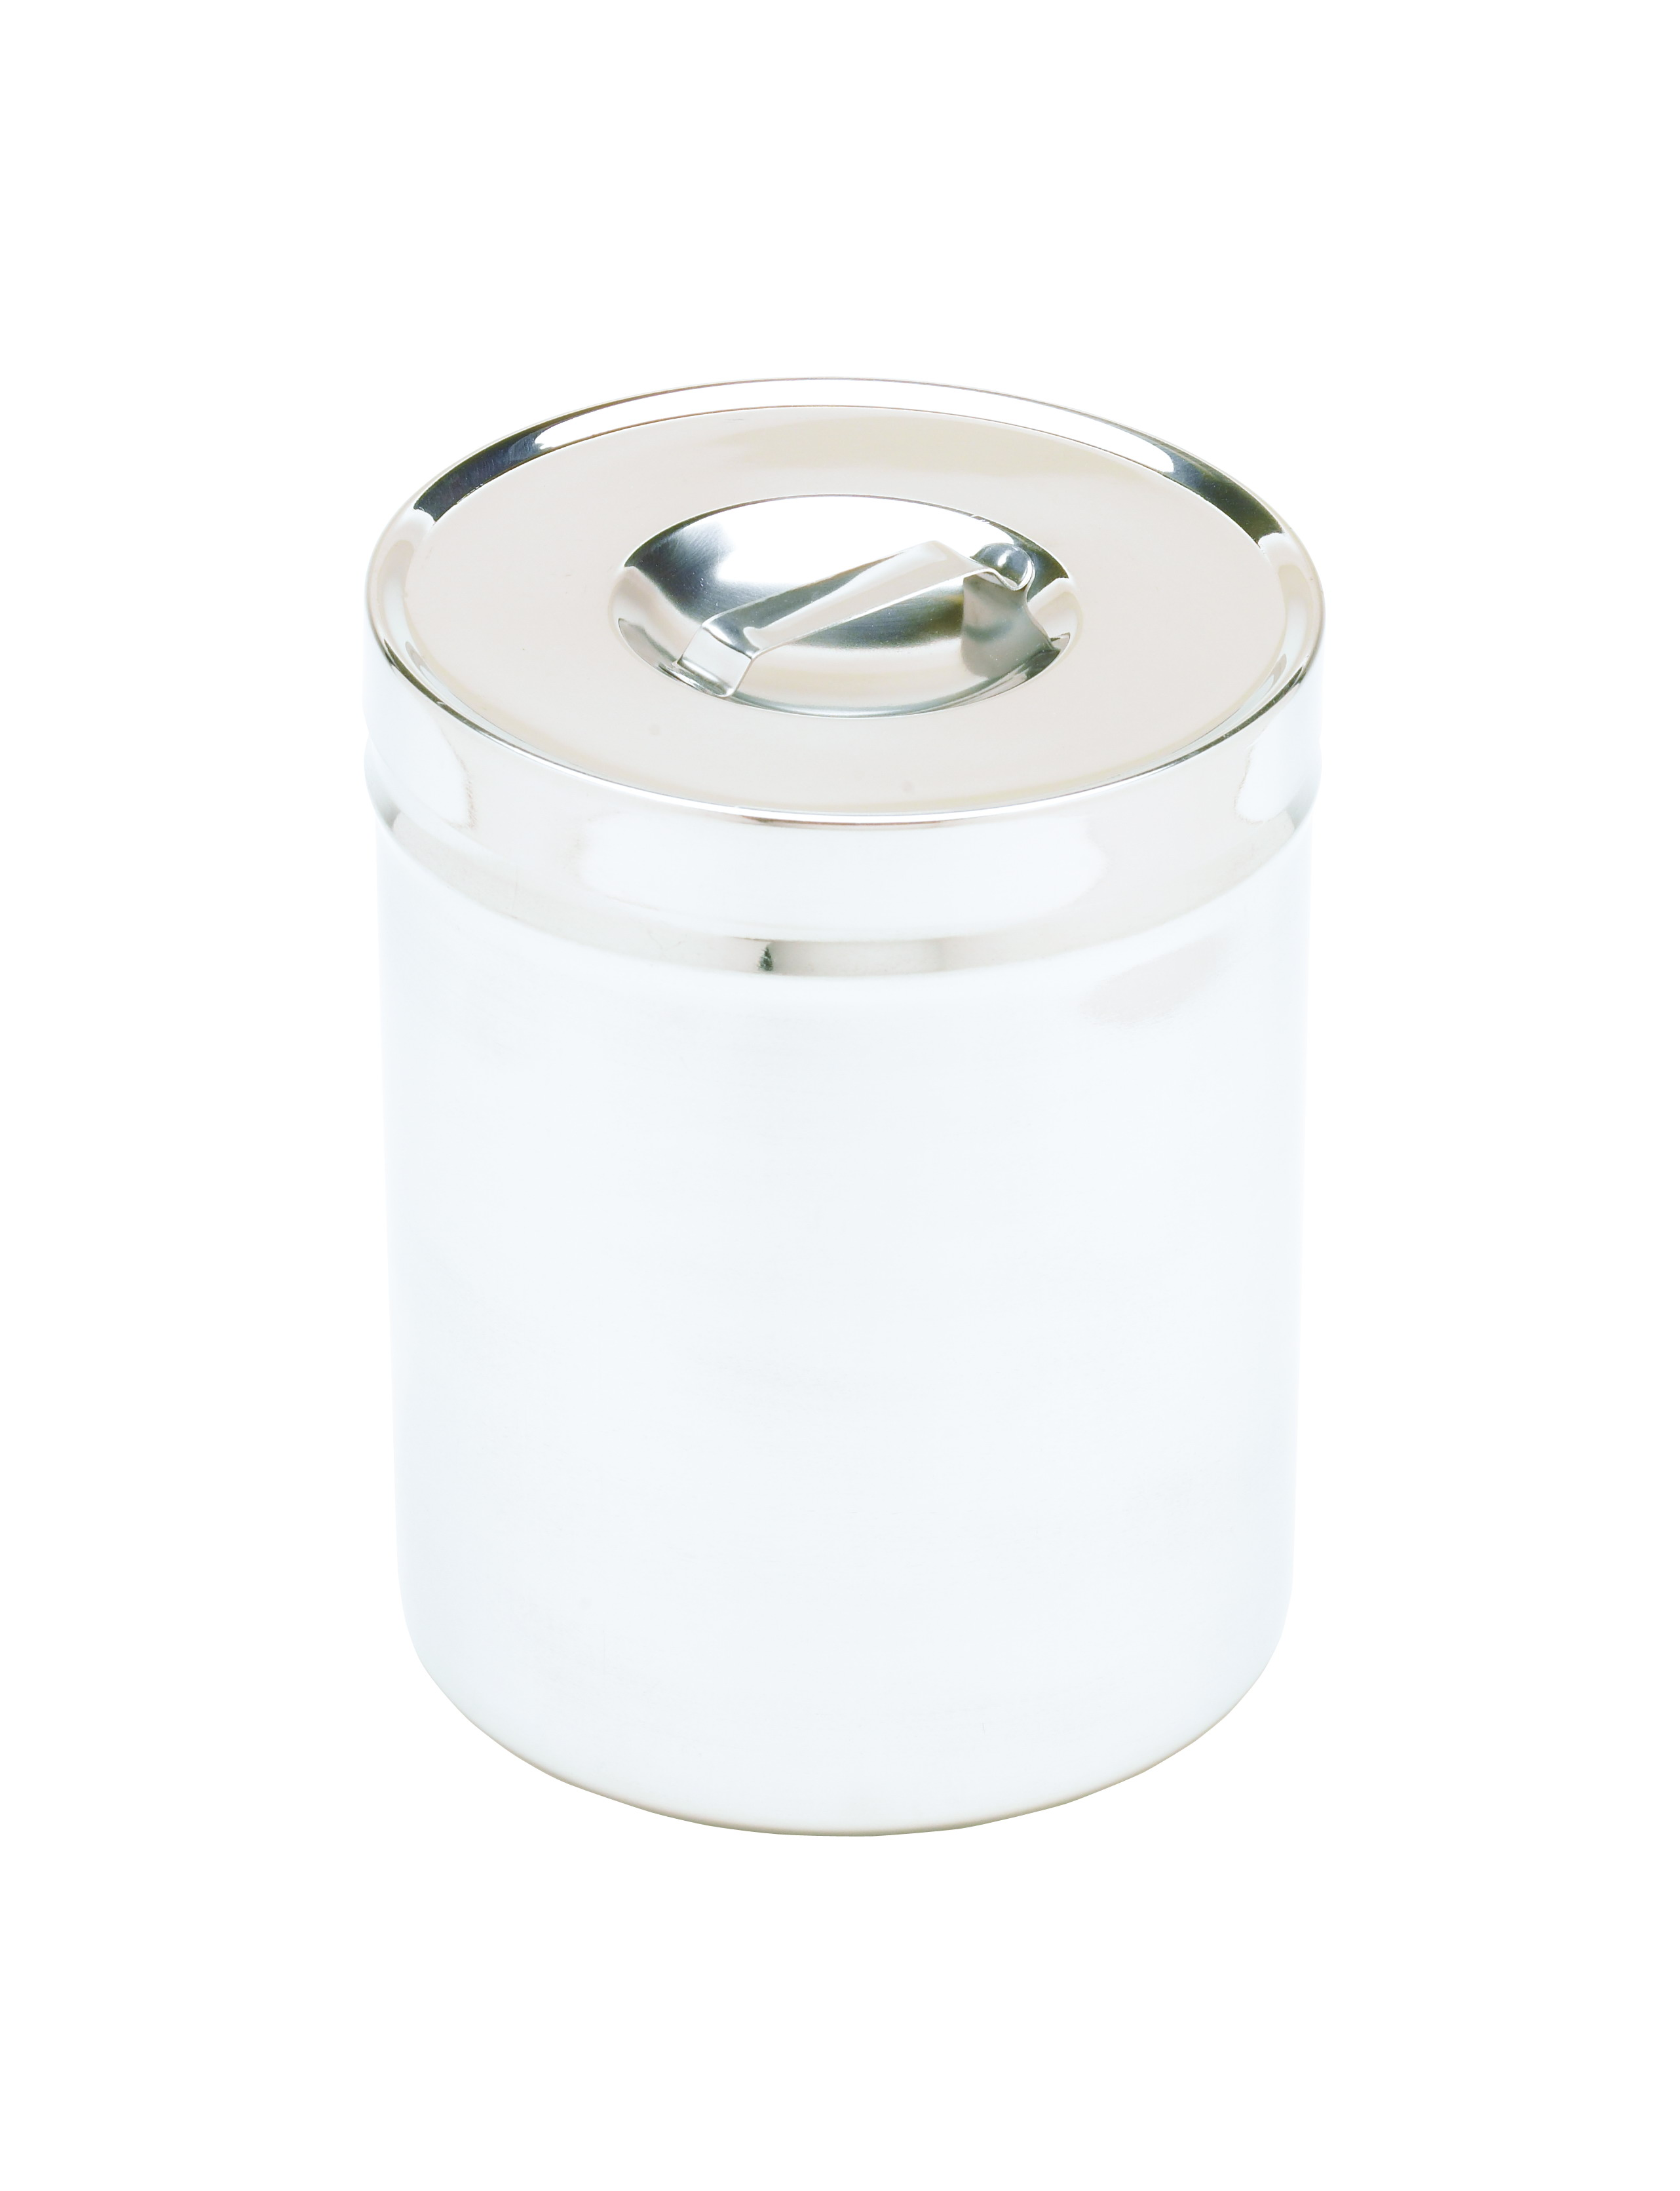 dressing-jar-cvr-3qt-5-7-8-x-7-5-64-3-qt-3-955-miltex.jpg